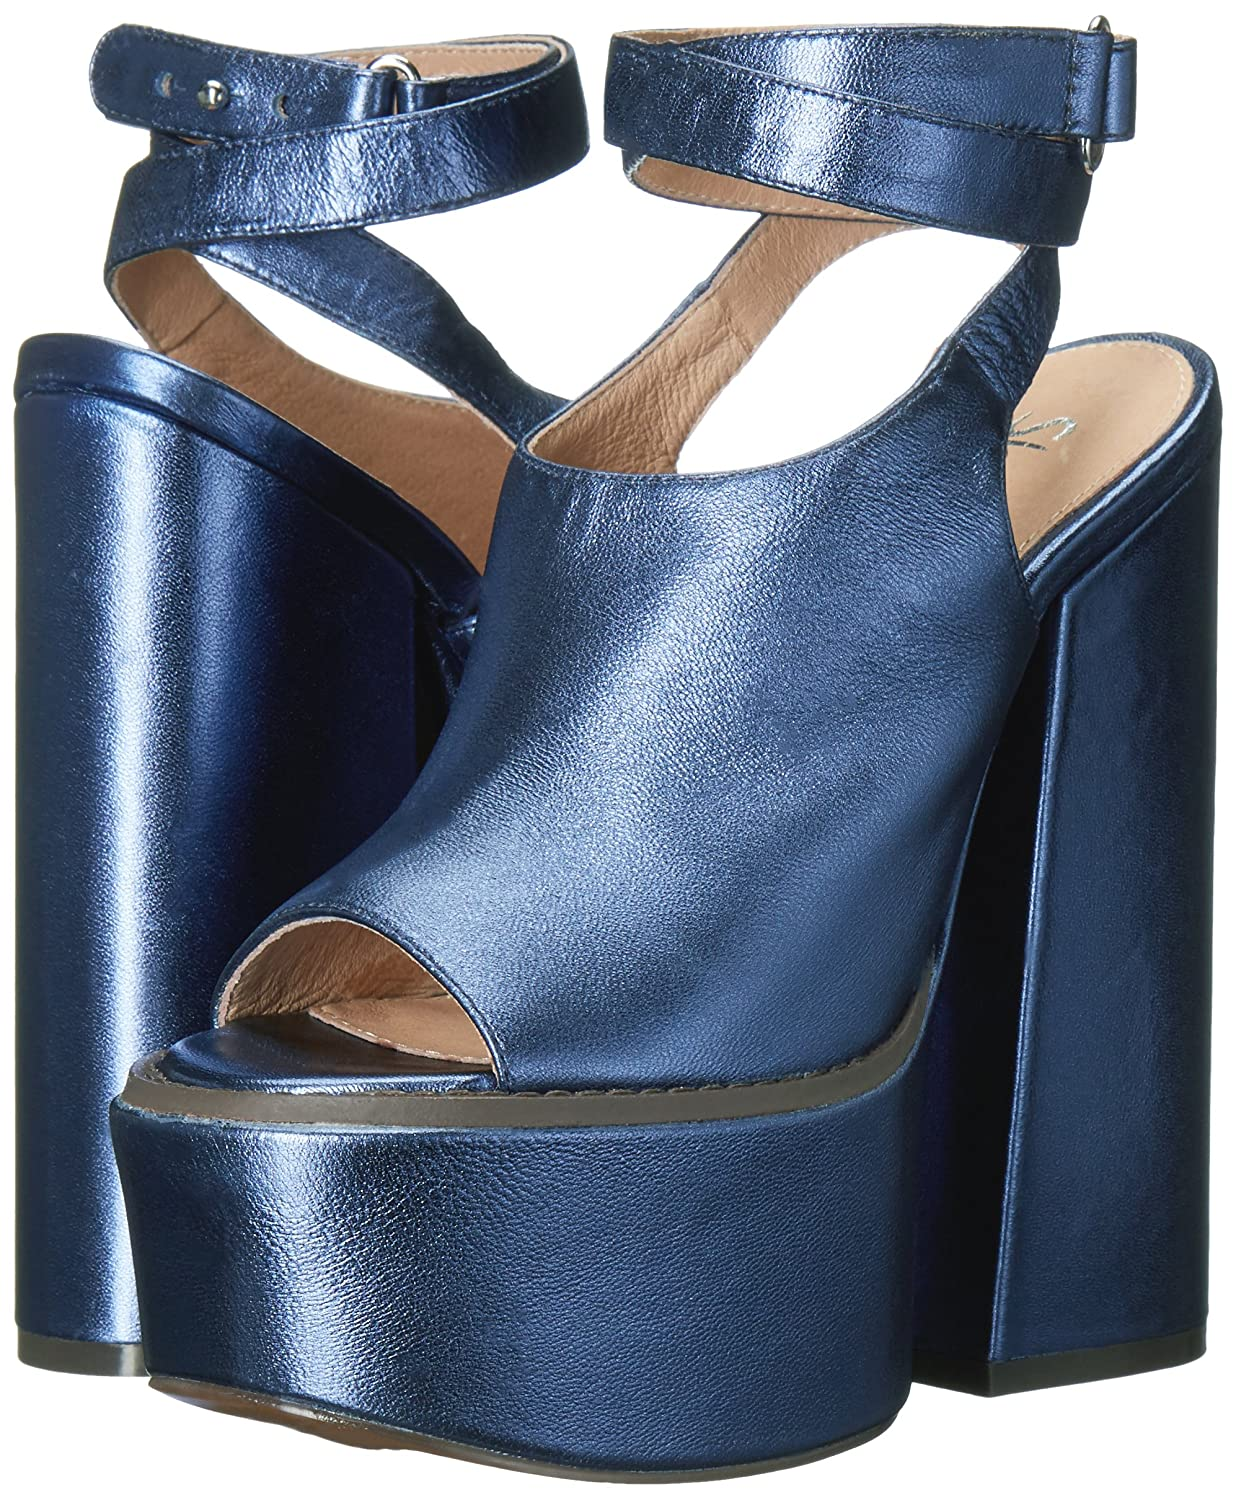 | Shellys London Chester Blue Leather Sling Back